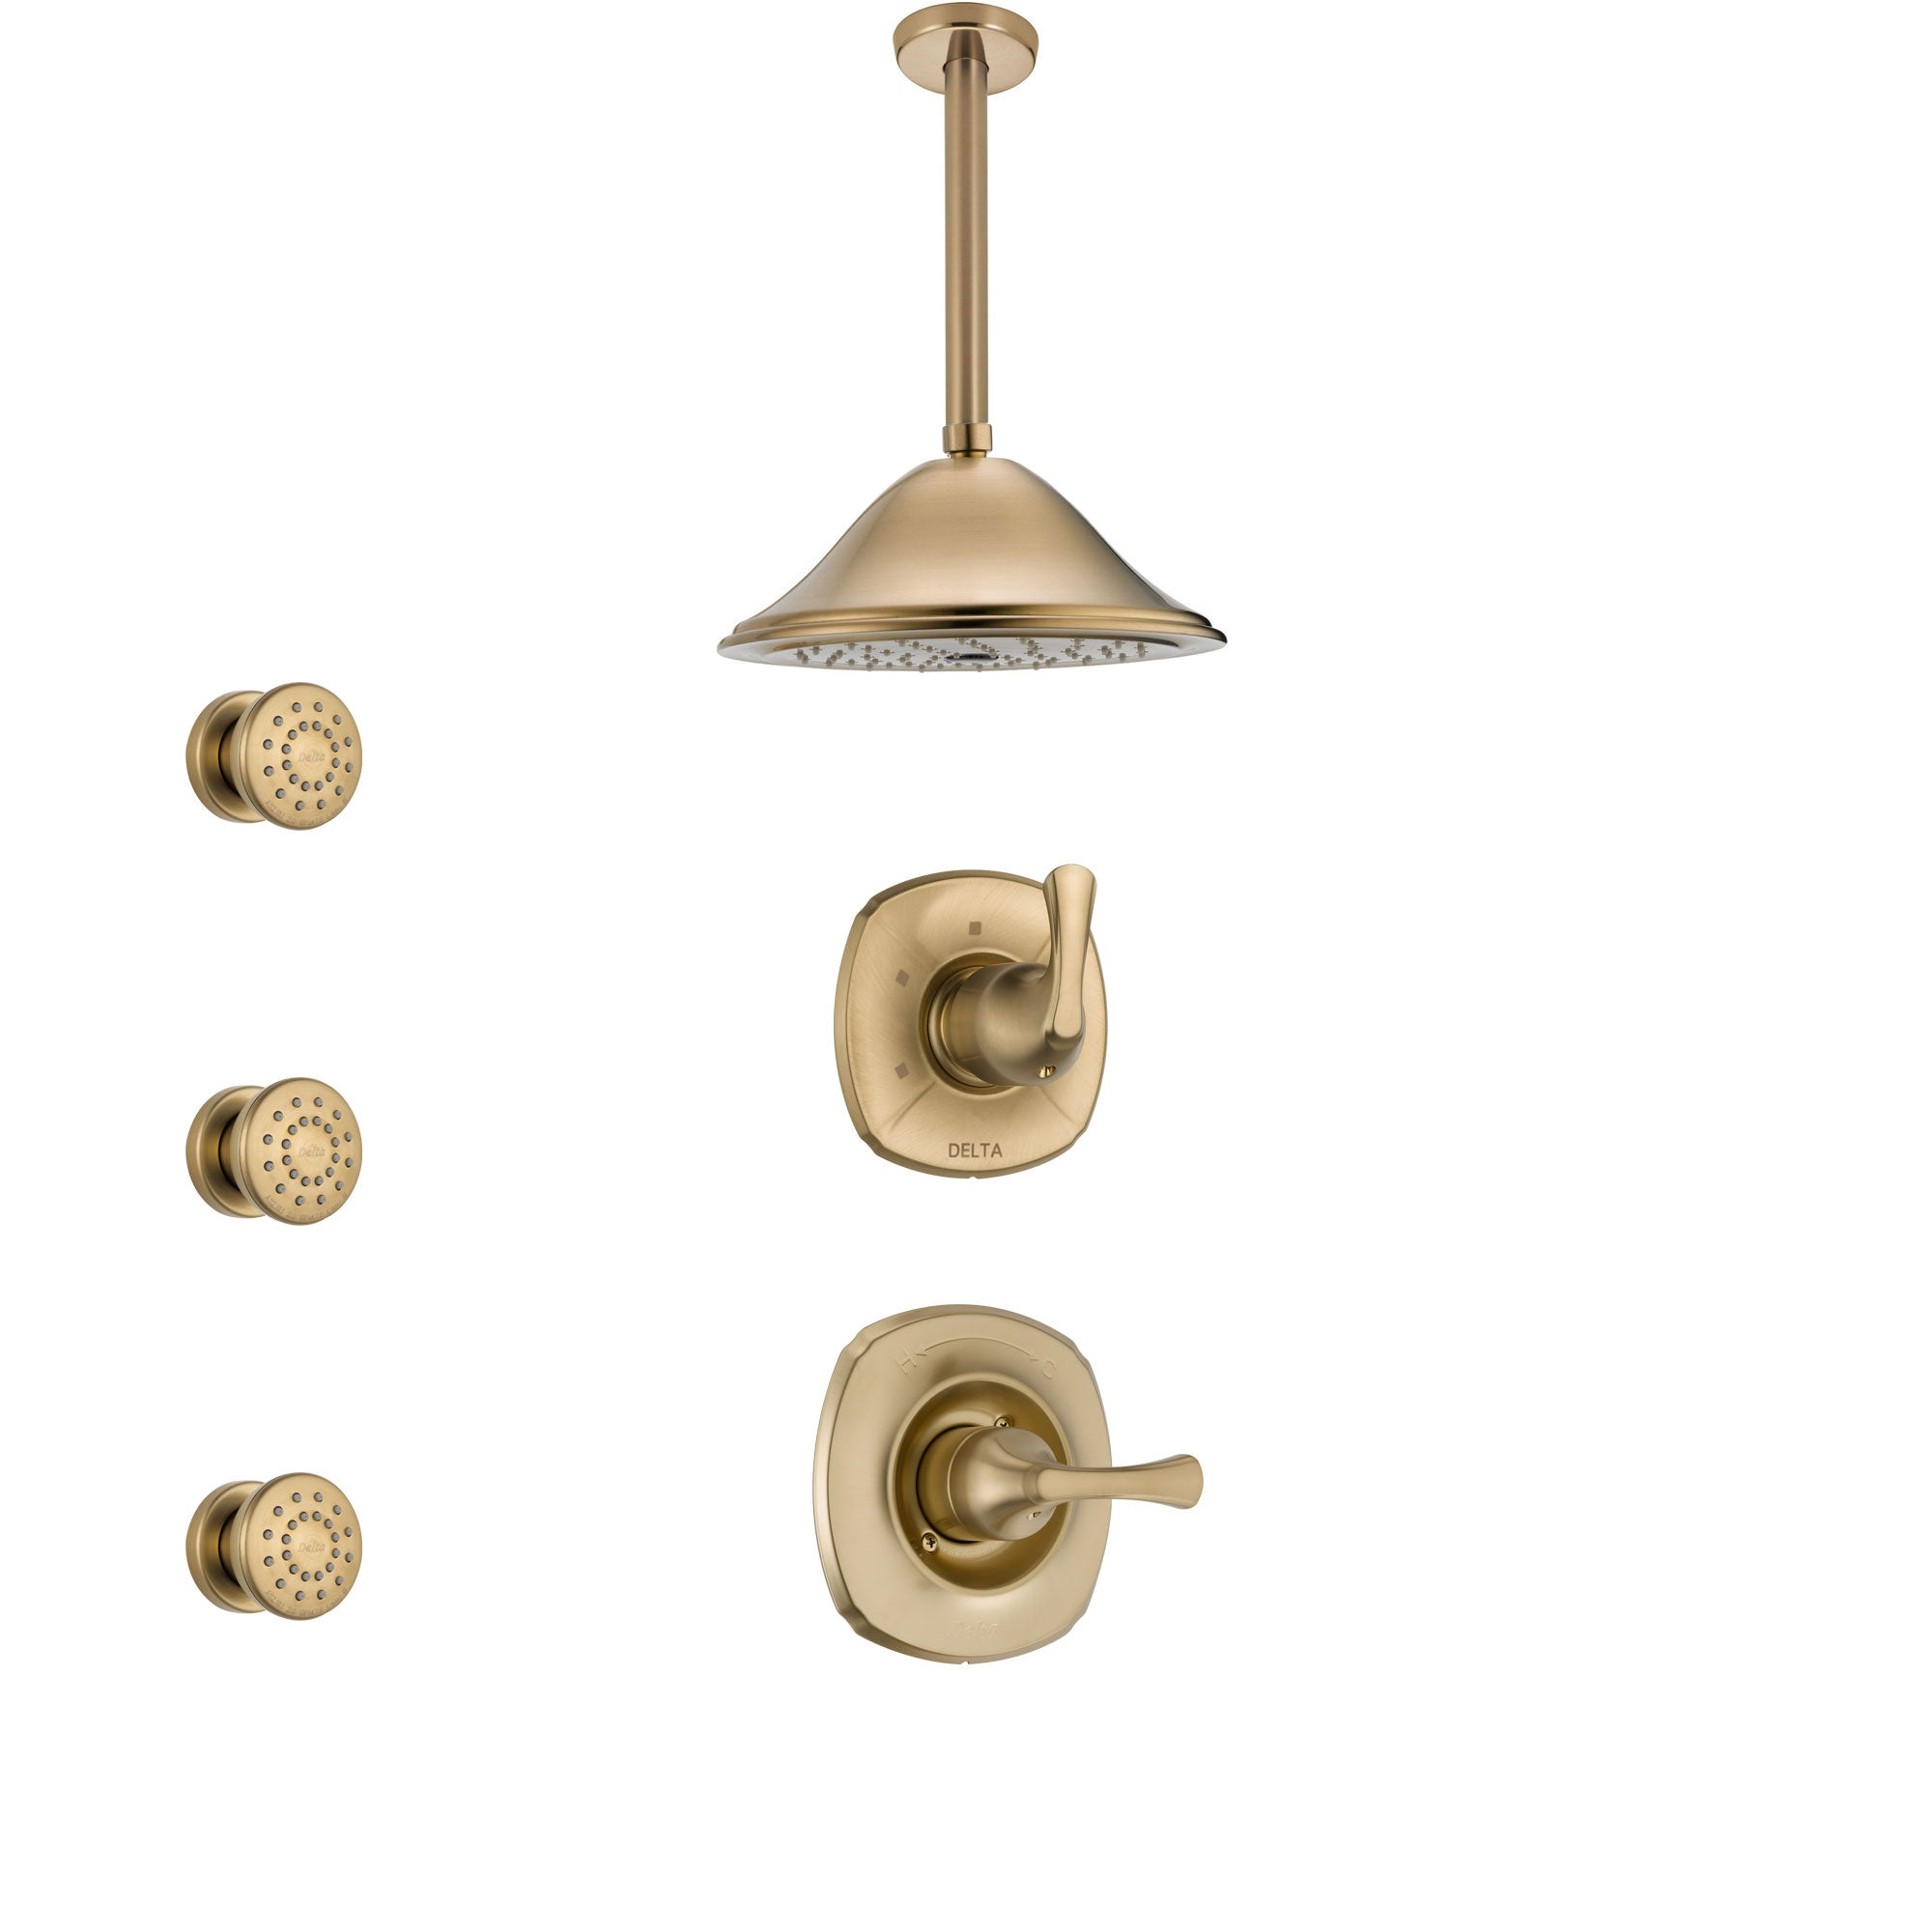 Delta Addison Champagne Bronze Finish Shower System with Control Handle, 3-Setting Diverter, Ceiling Mount Showerhead, and 3 Body Sprays SS1492CZ2